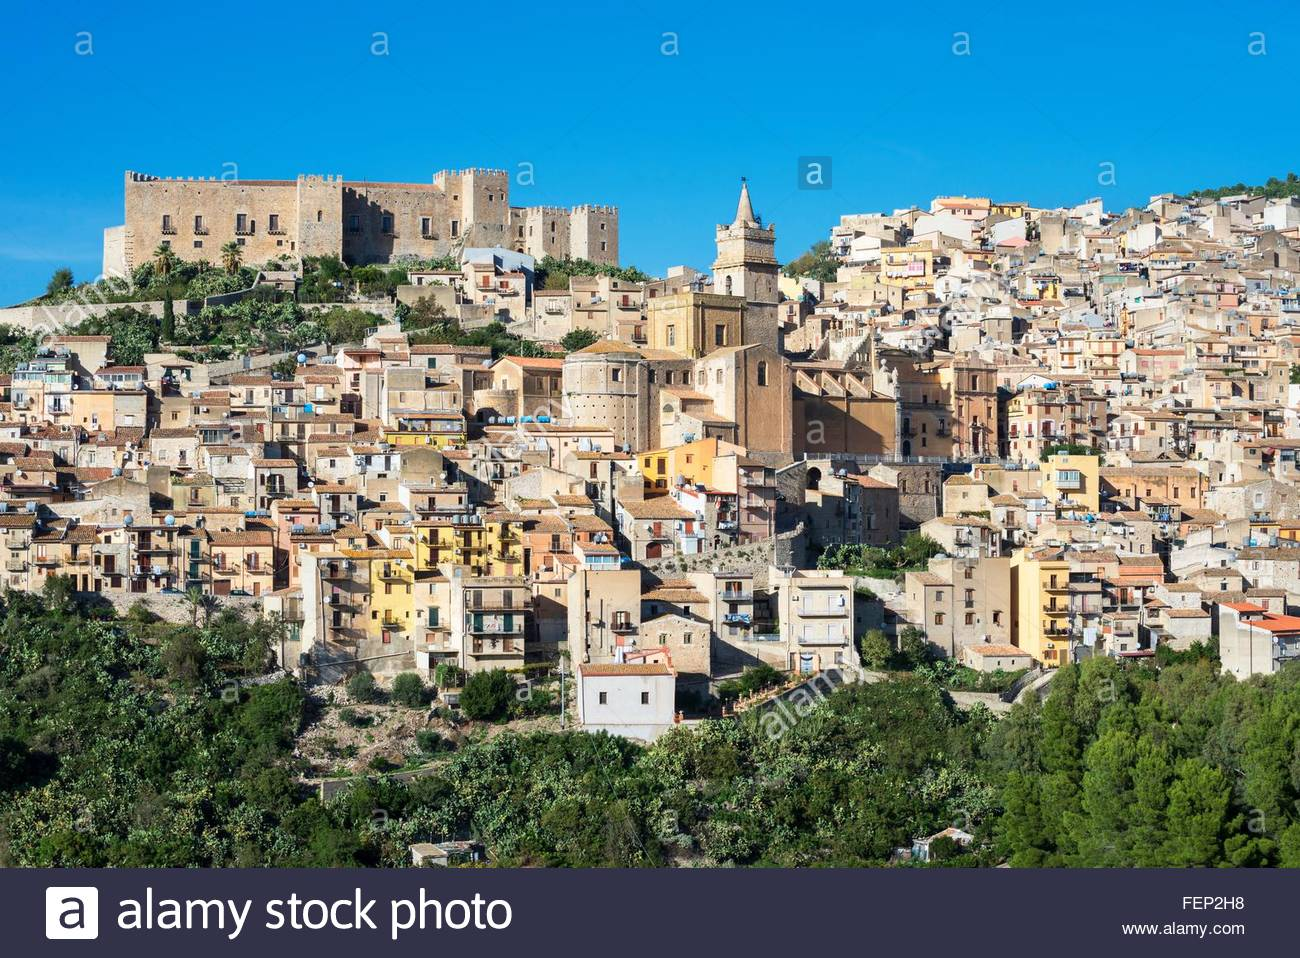 Elevated view of Caccamo castle and village, Caccamo, Sicily, Italy - Stock Image